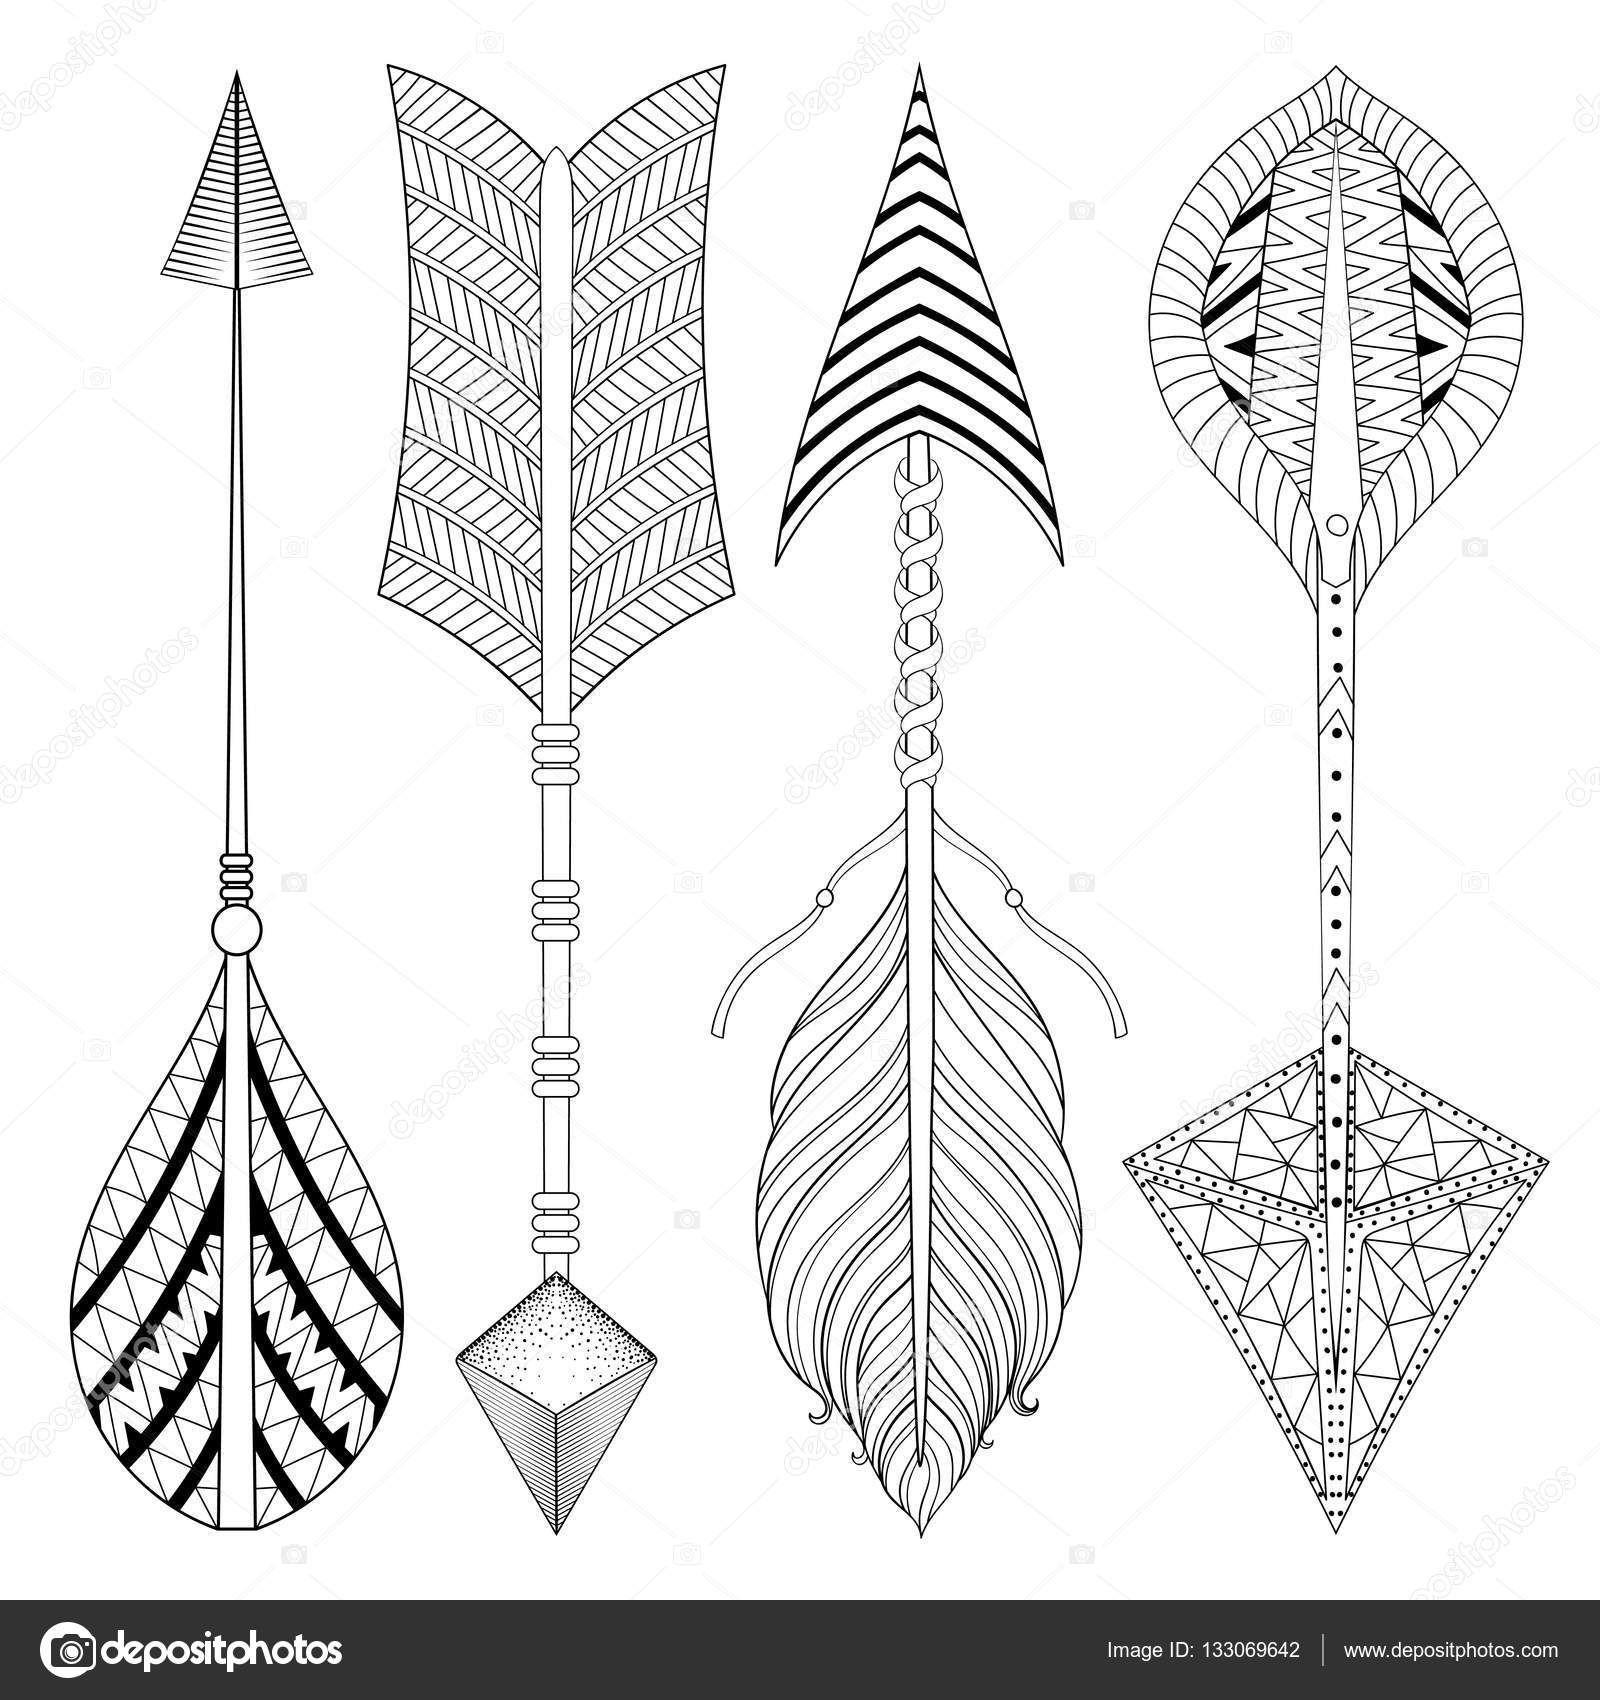 depositphotos_133069642 stock illustration boho chic ethnic arrow set